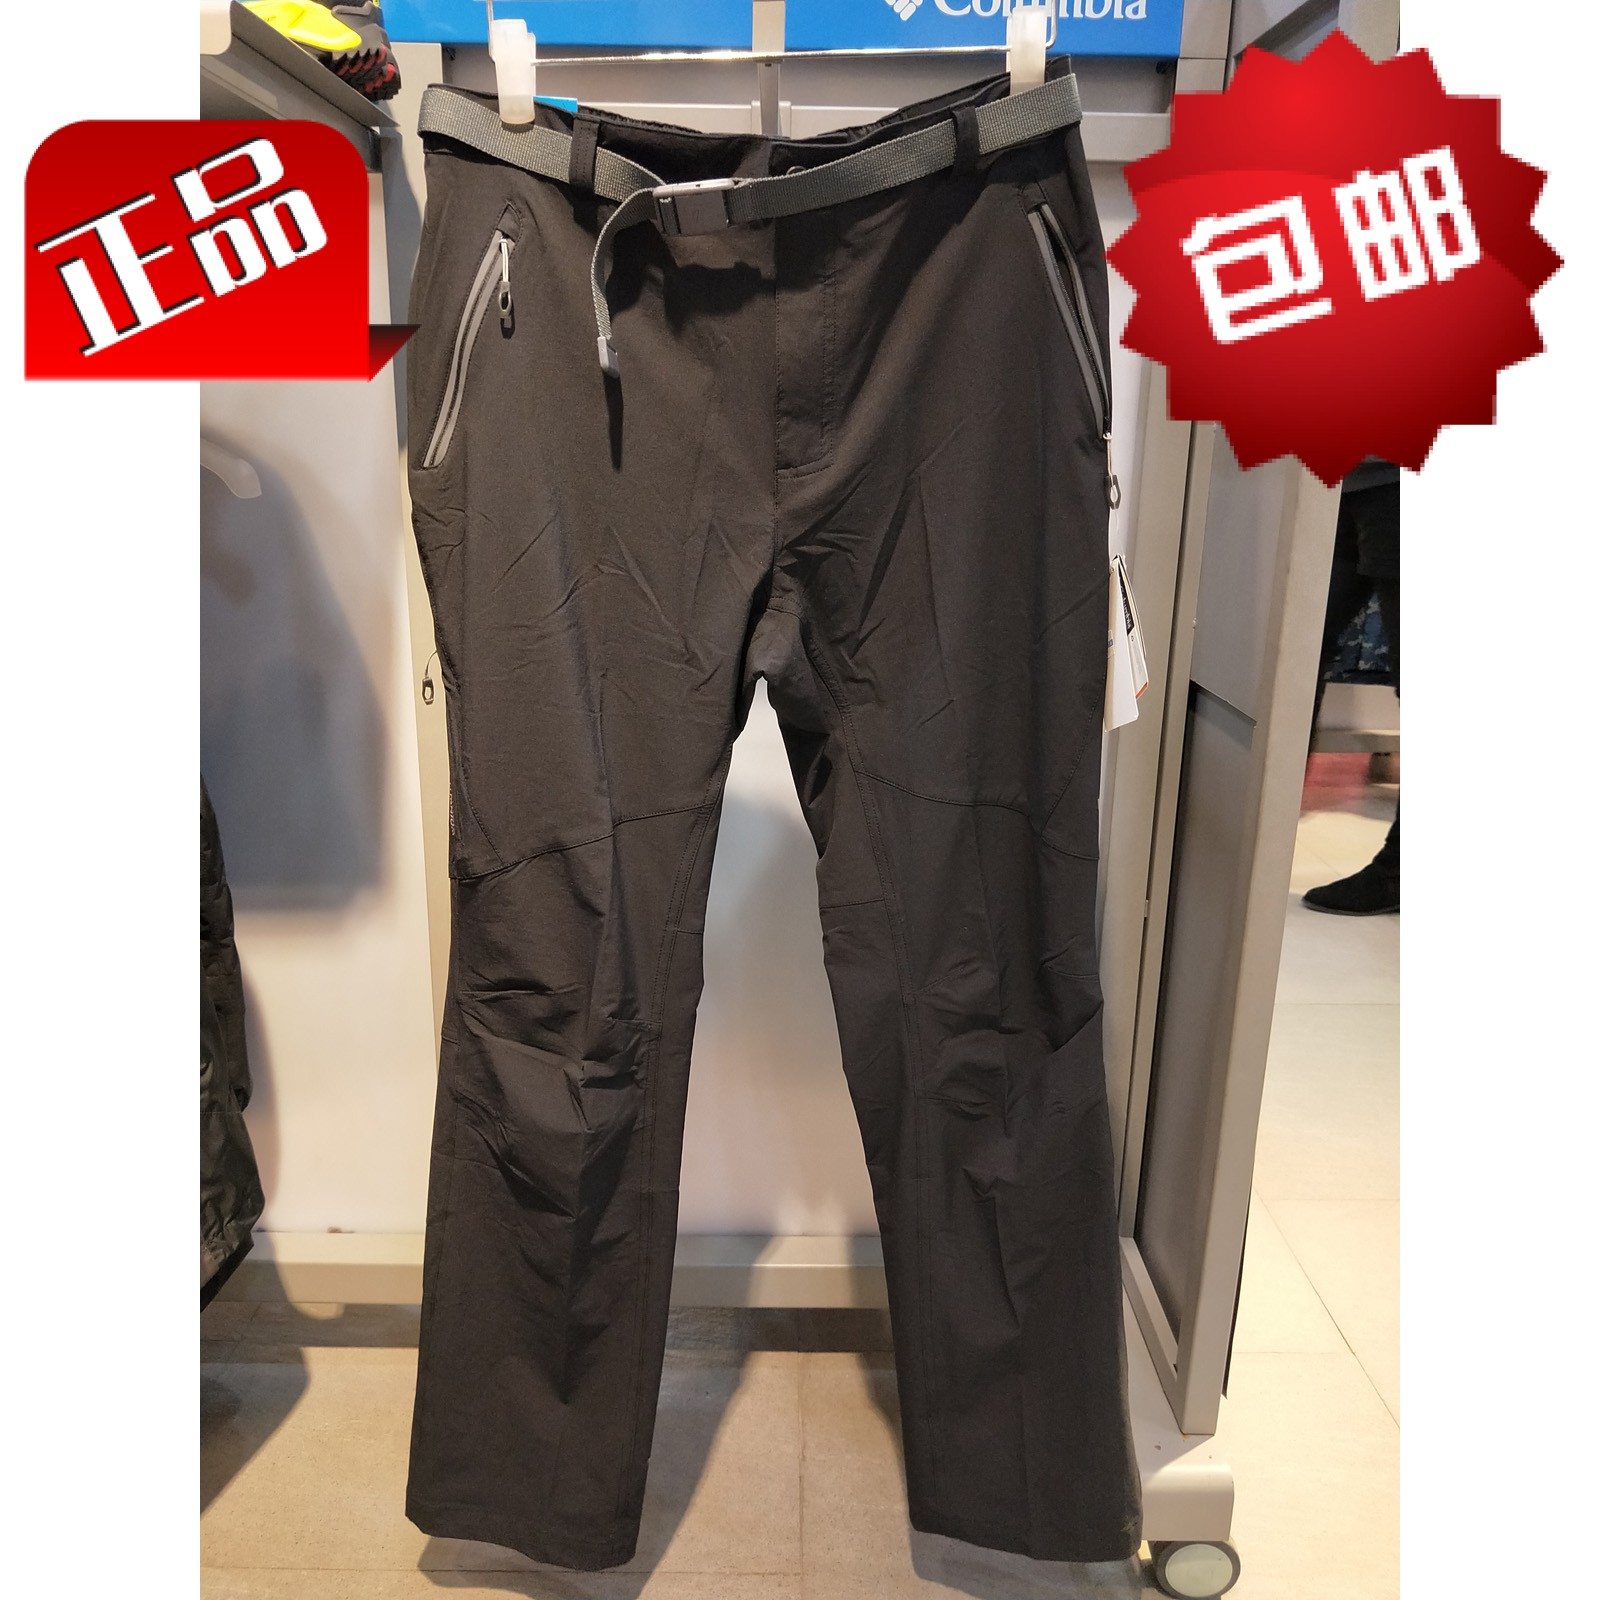 2018 spring and summer new Colombian outdoor men's trousers quick-drying pants waterproof elastic trousers trousers AE1587